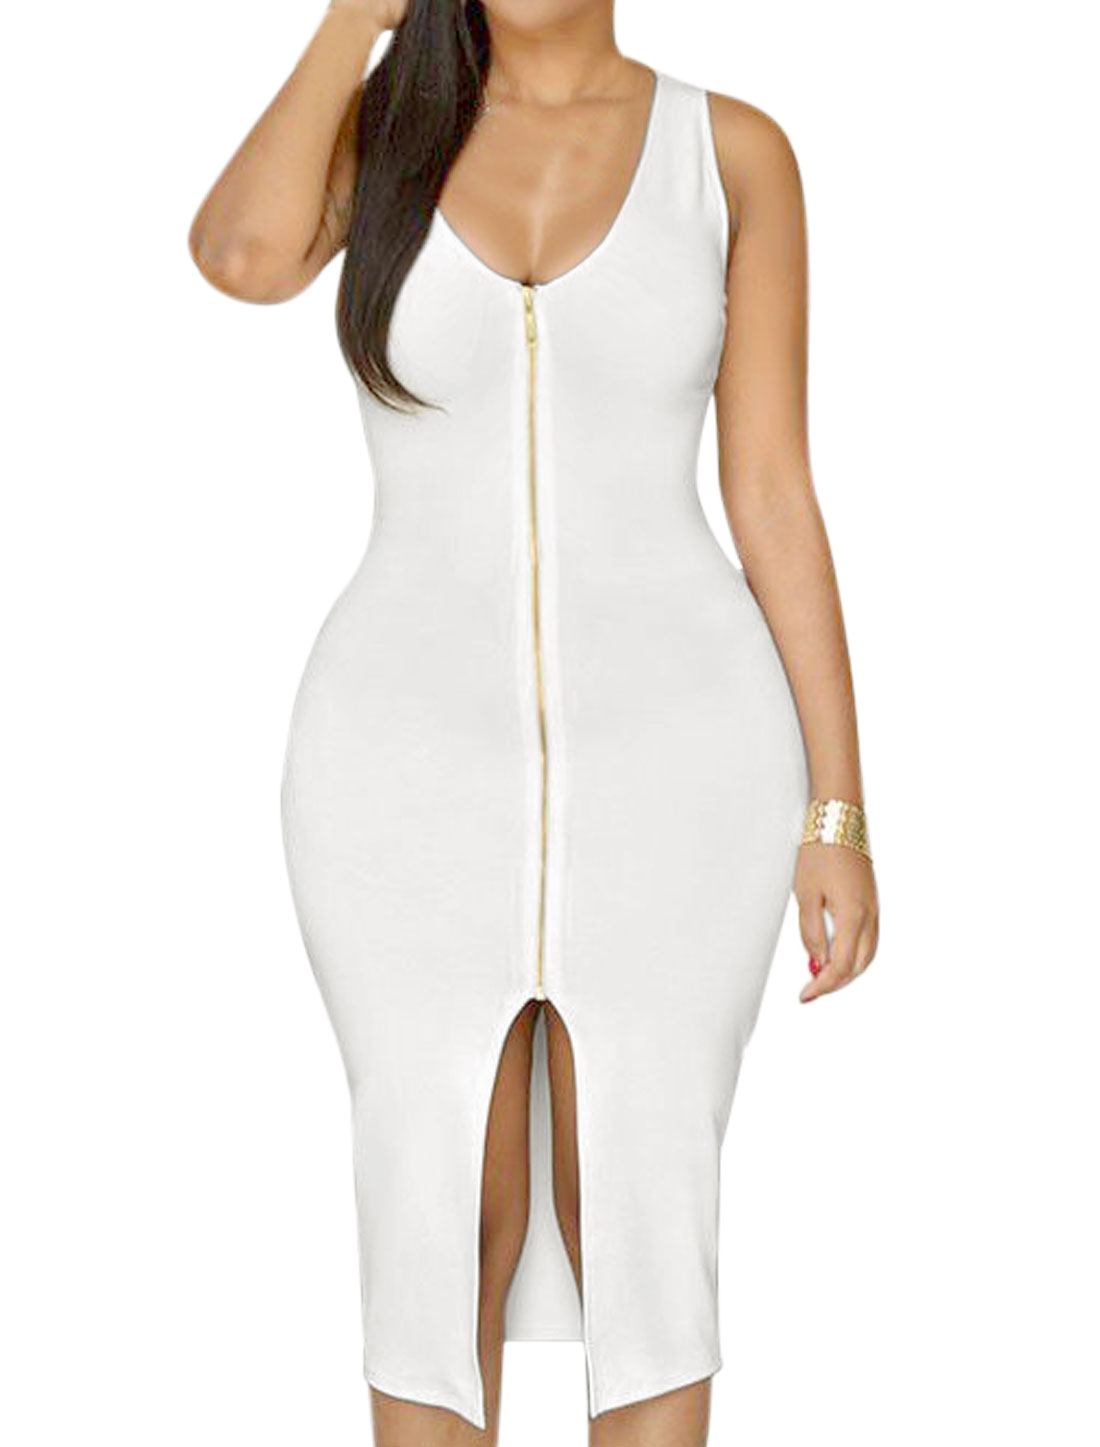 Lady Sleeveless Scoop Neck Exposed Zipper Split Front Bodycon Dress White L